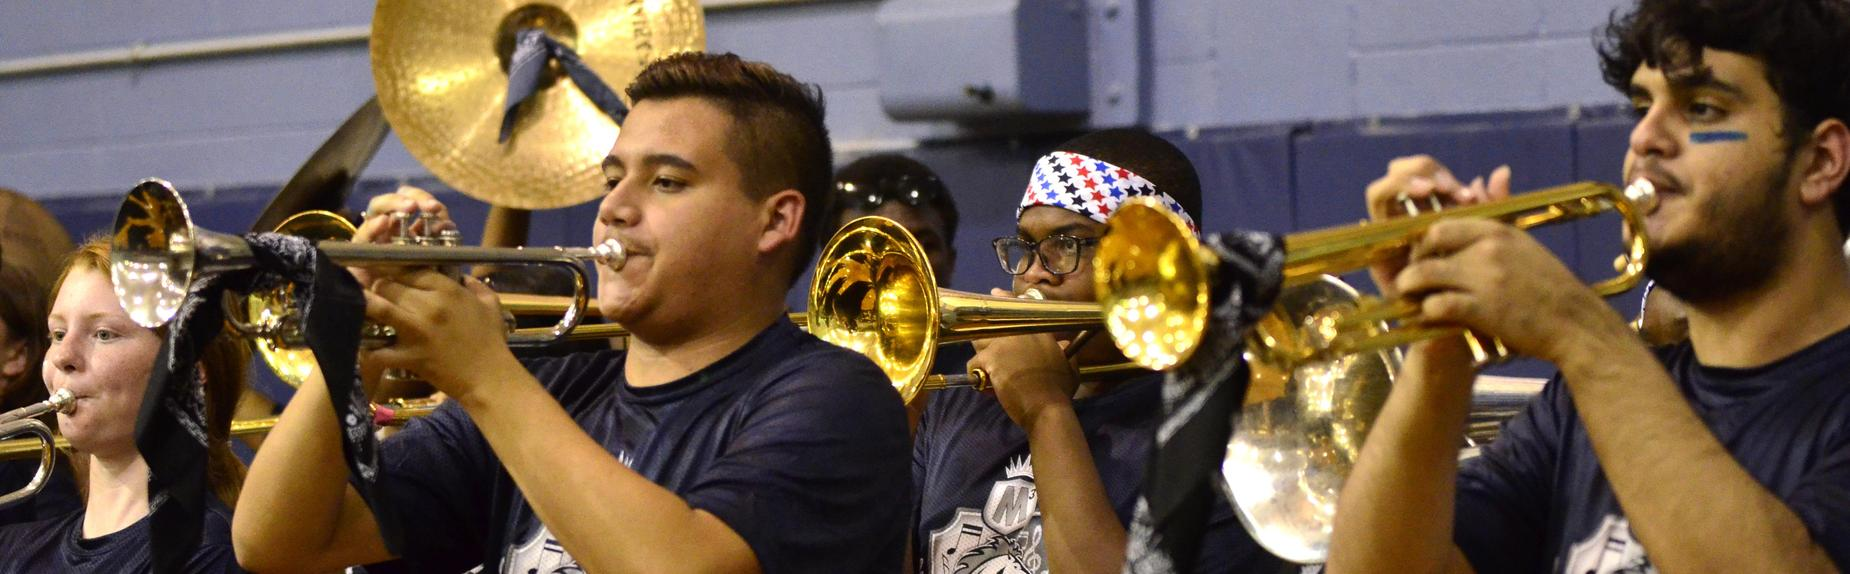 The Mustang Band performs at a pep rally.